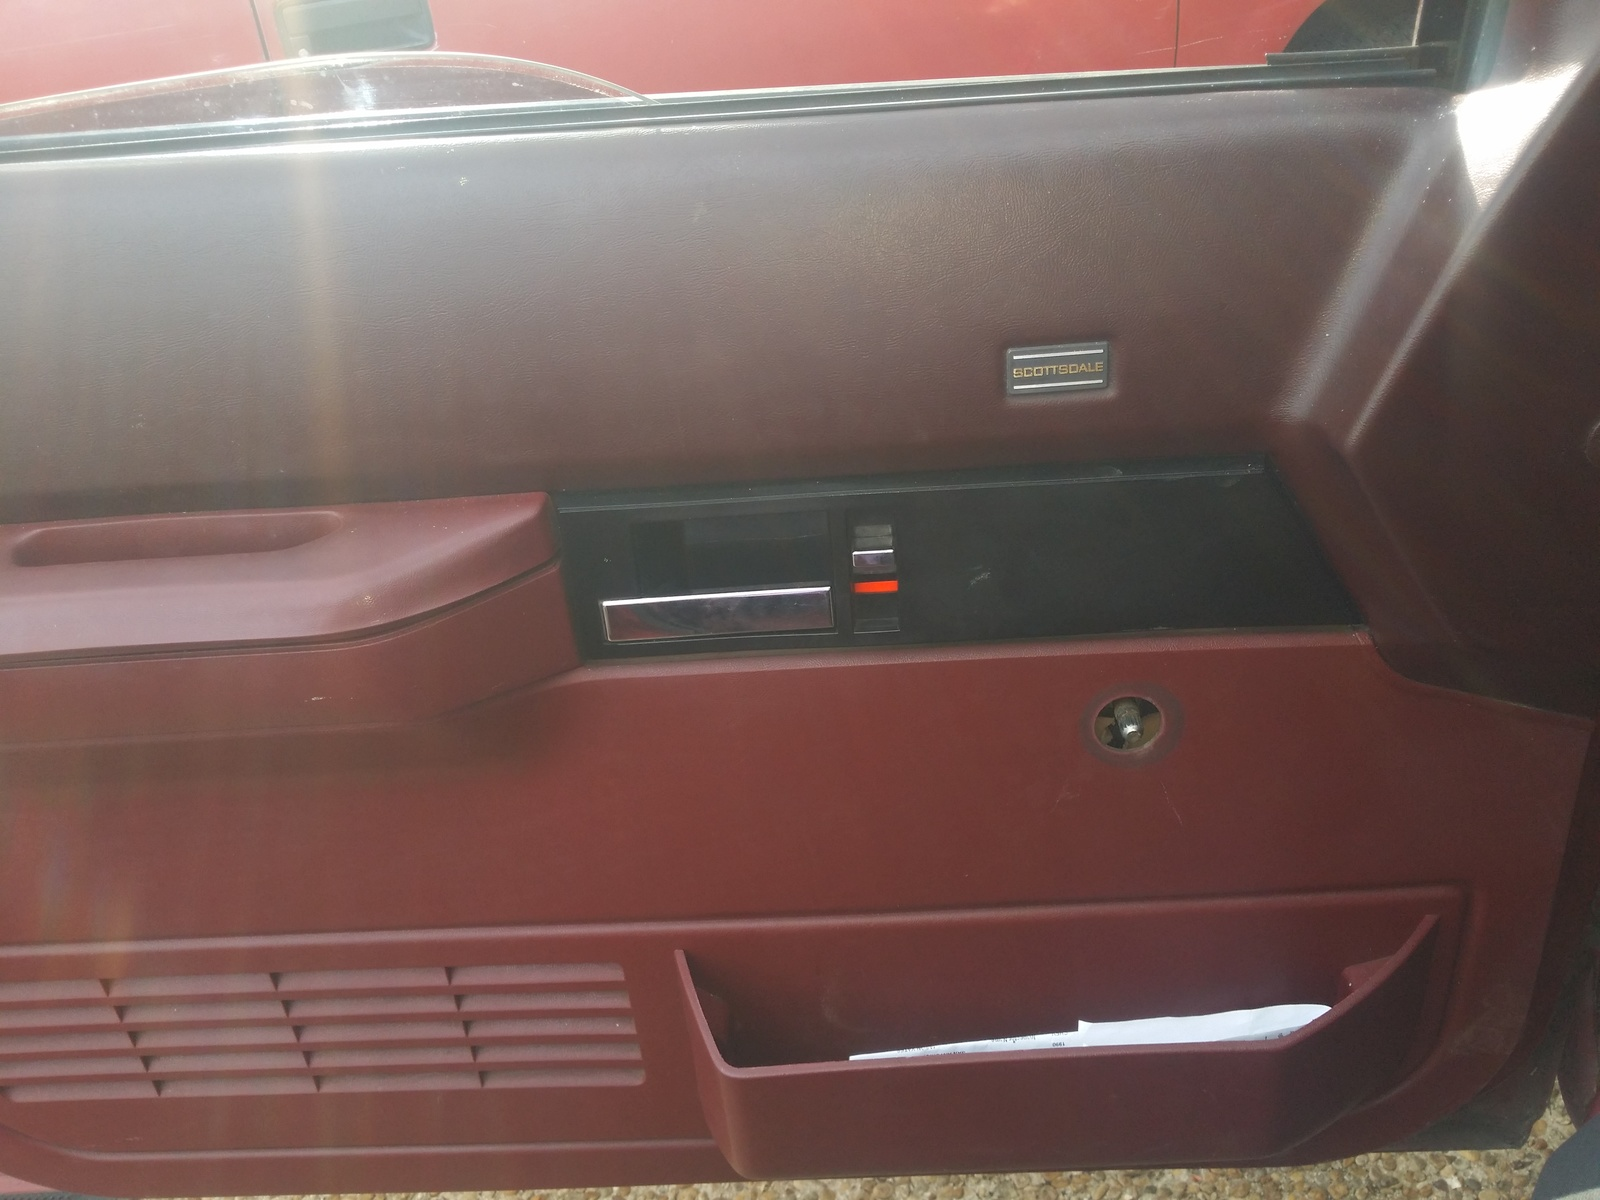 2 people found this helpful. & Chevrolet C/K 1500 Questions - remove truck door panel - CarGurus